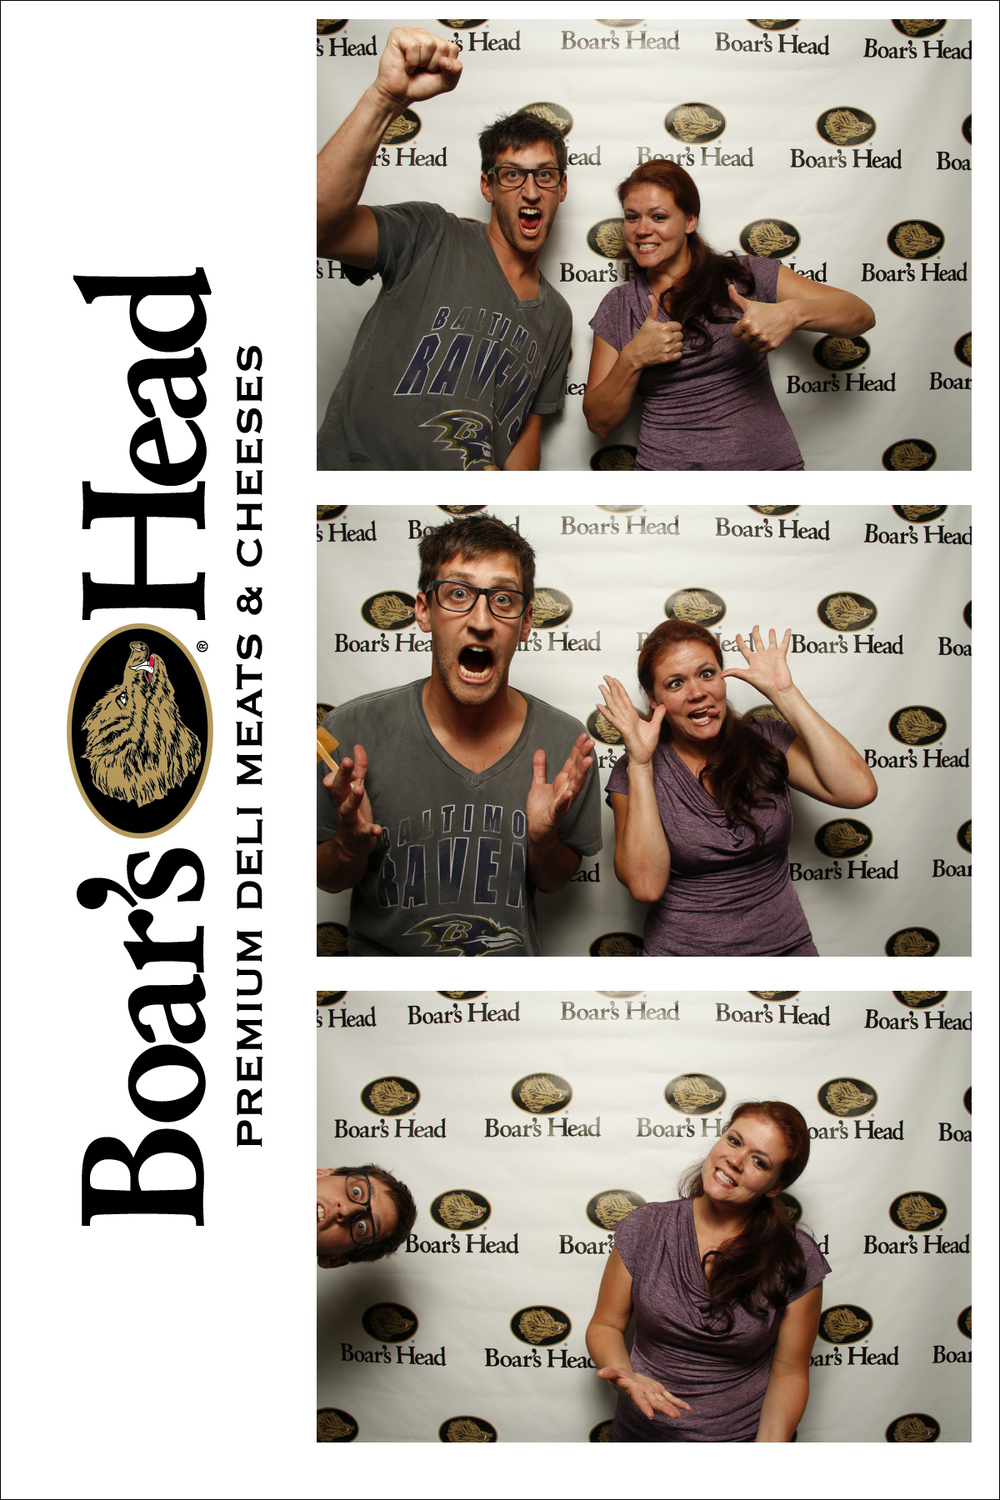 Boar's Head Photo Booth